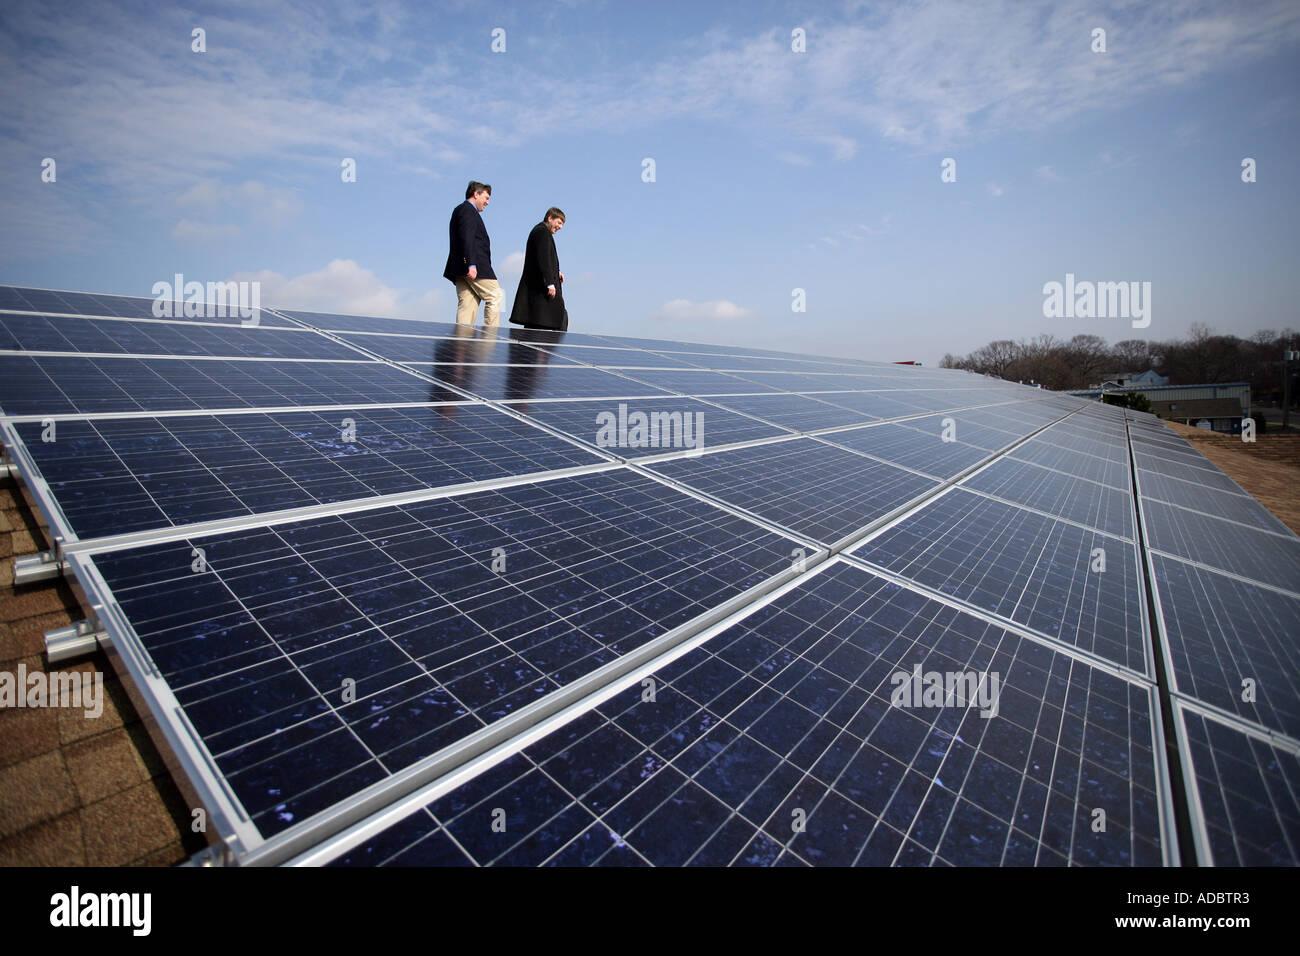 Solar Panels on a business building  in Connecticut allows the owners to sell electric power back to the power company - Stock Image